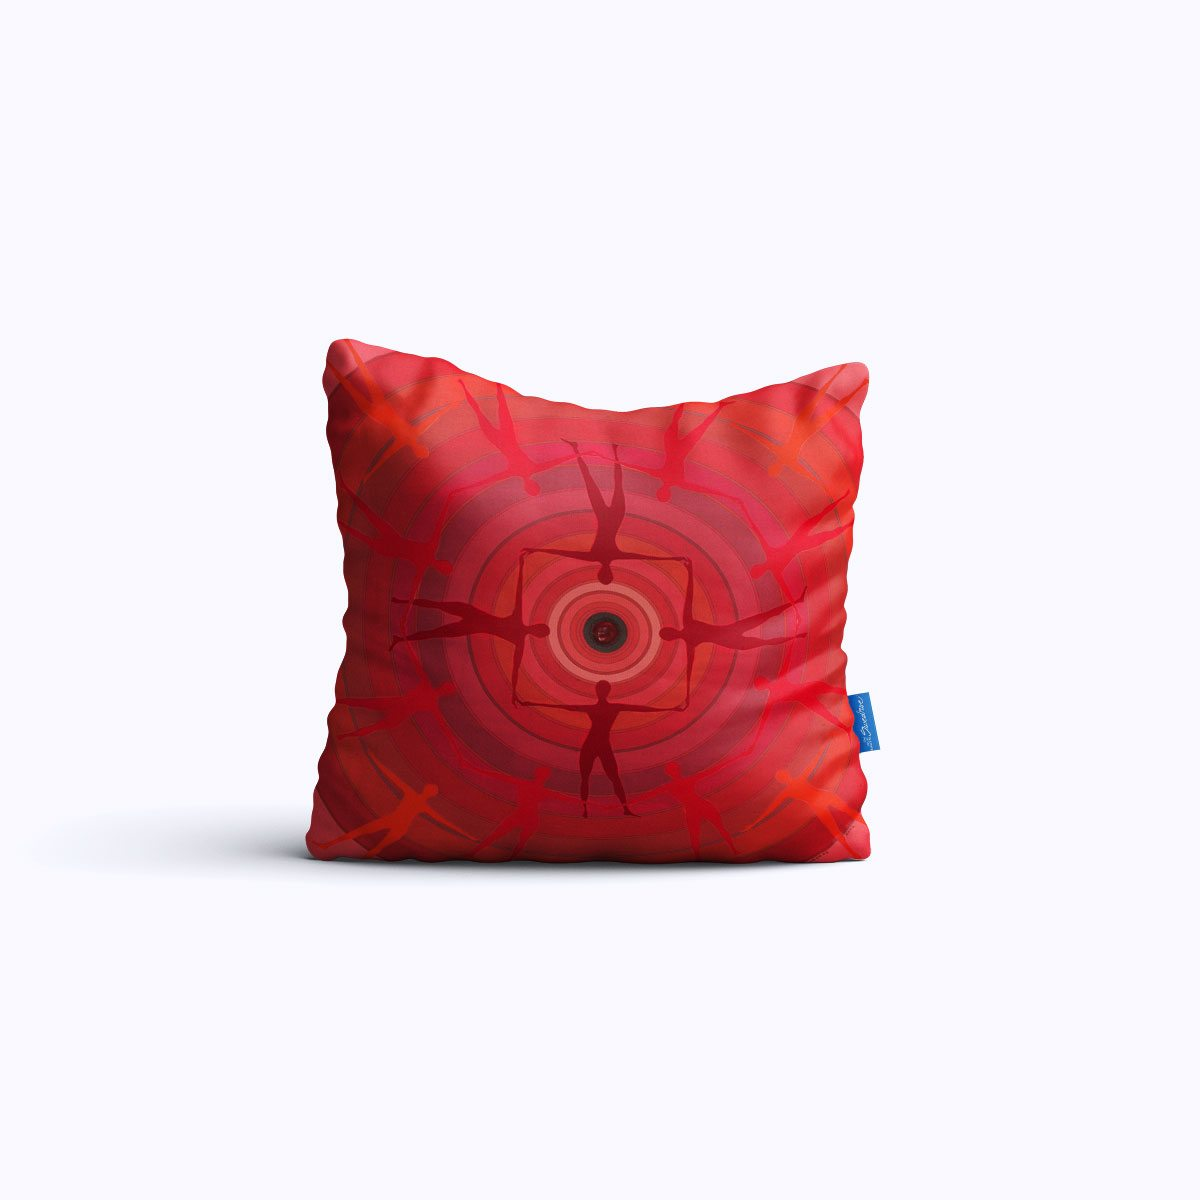 RMS019-Spin Study 01 - Throw Pillow - Swedroe Licensing